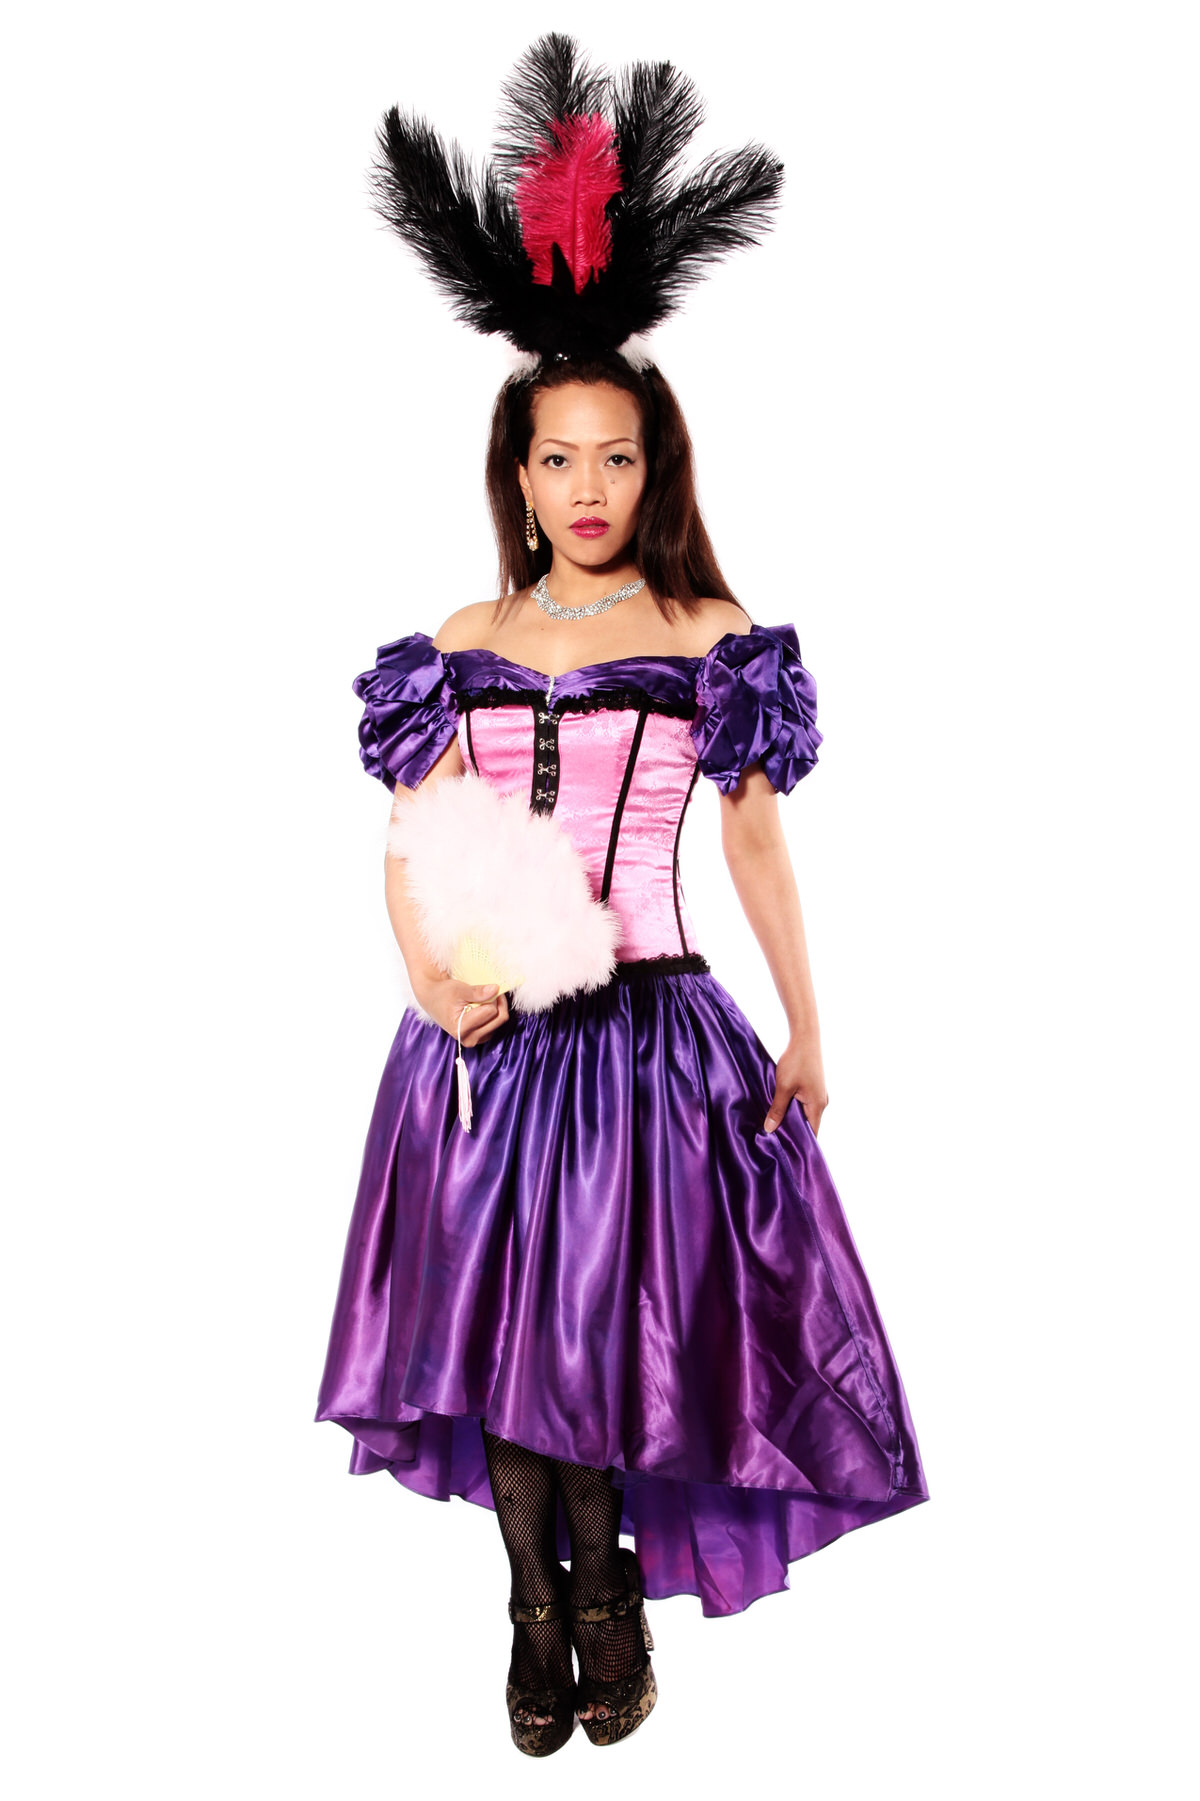 MOULIN ROUGE PURPLE SATIN DRESS WITH PINK CORSET